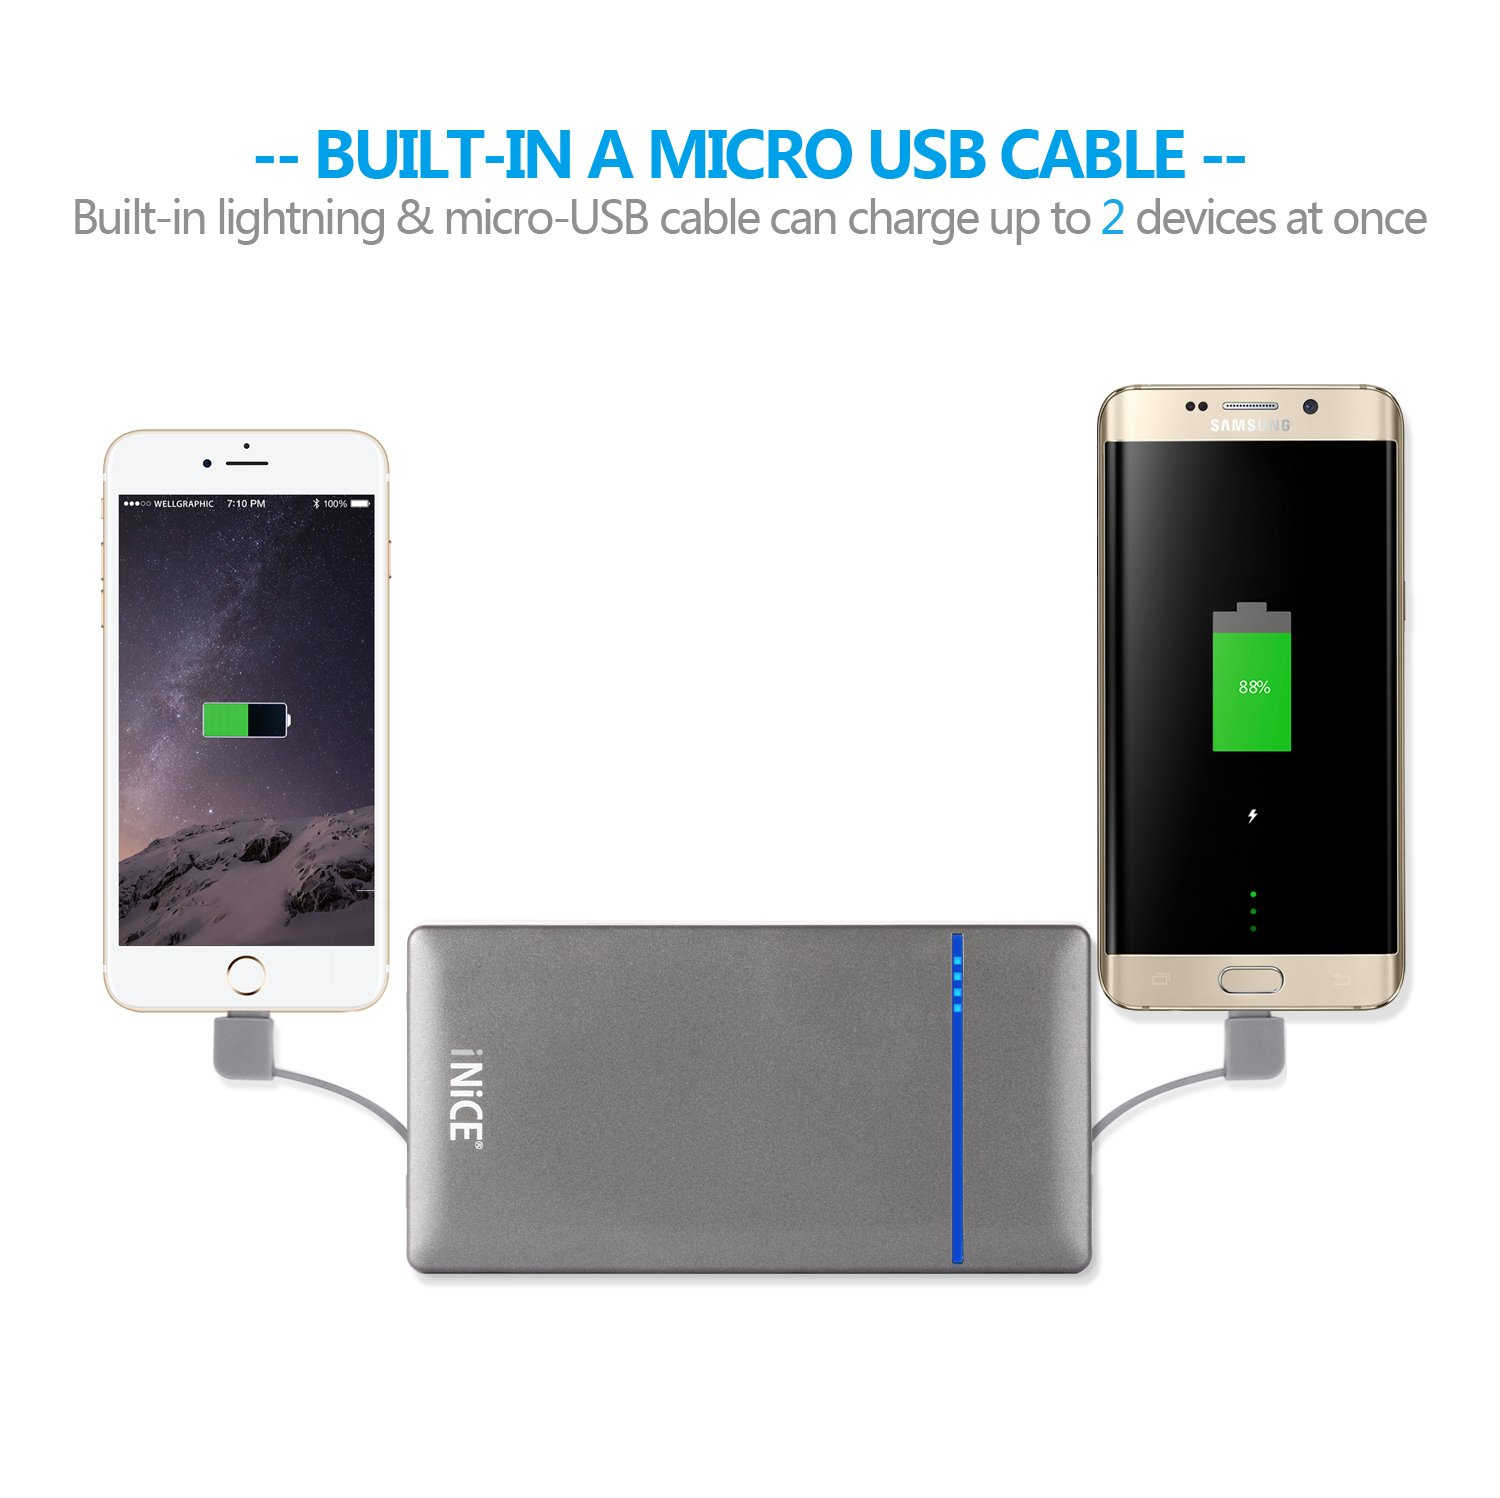 Inice Portable Bank 10000mah Power External Battery With Charger Bolt 21a Fast Charge 3in1 Cable Built In Lightning Micro Usb Travel For Iphone 7 7plus 6 6s Plus And